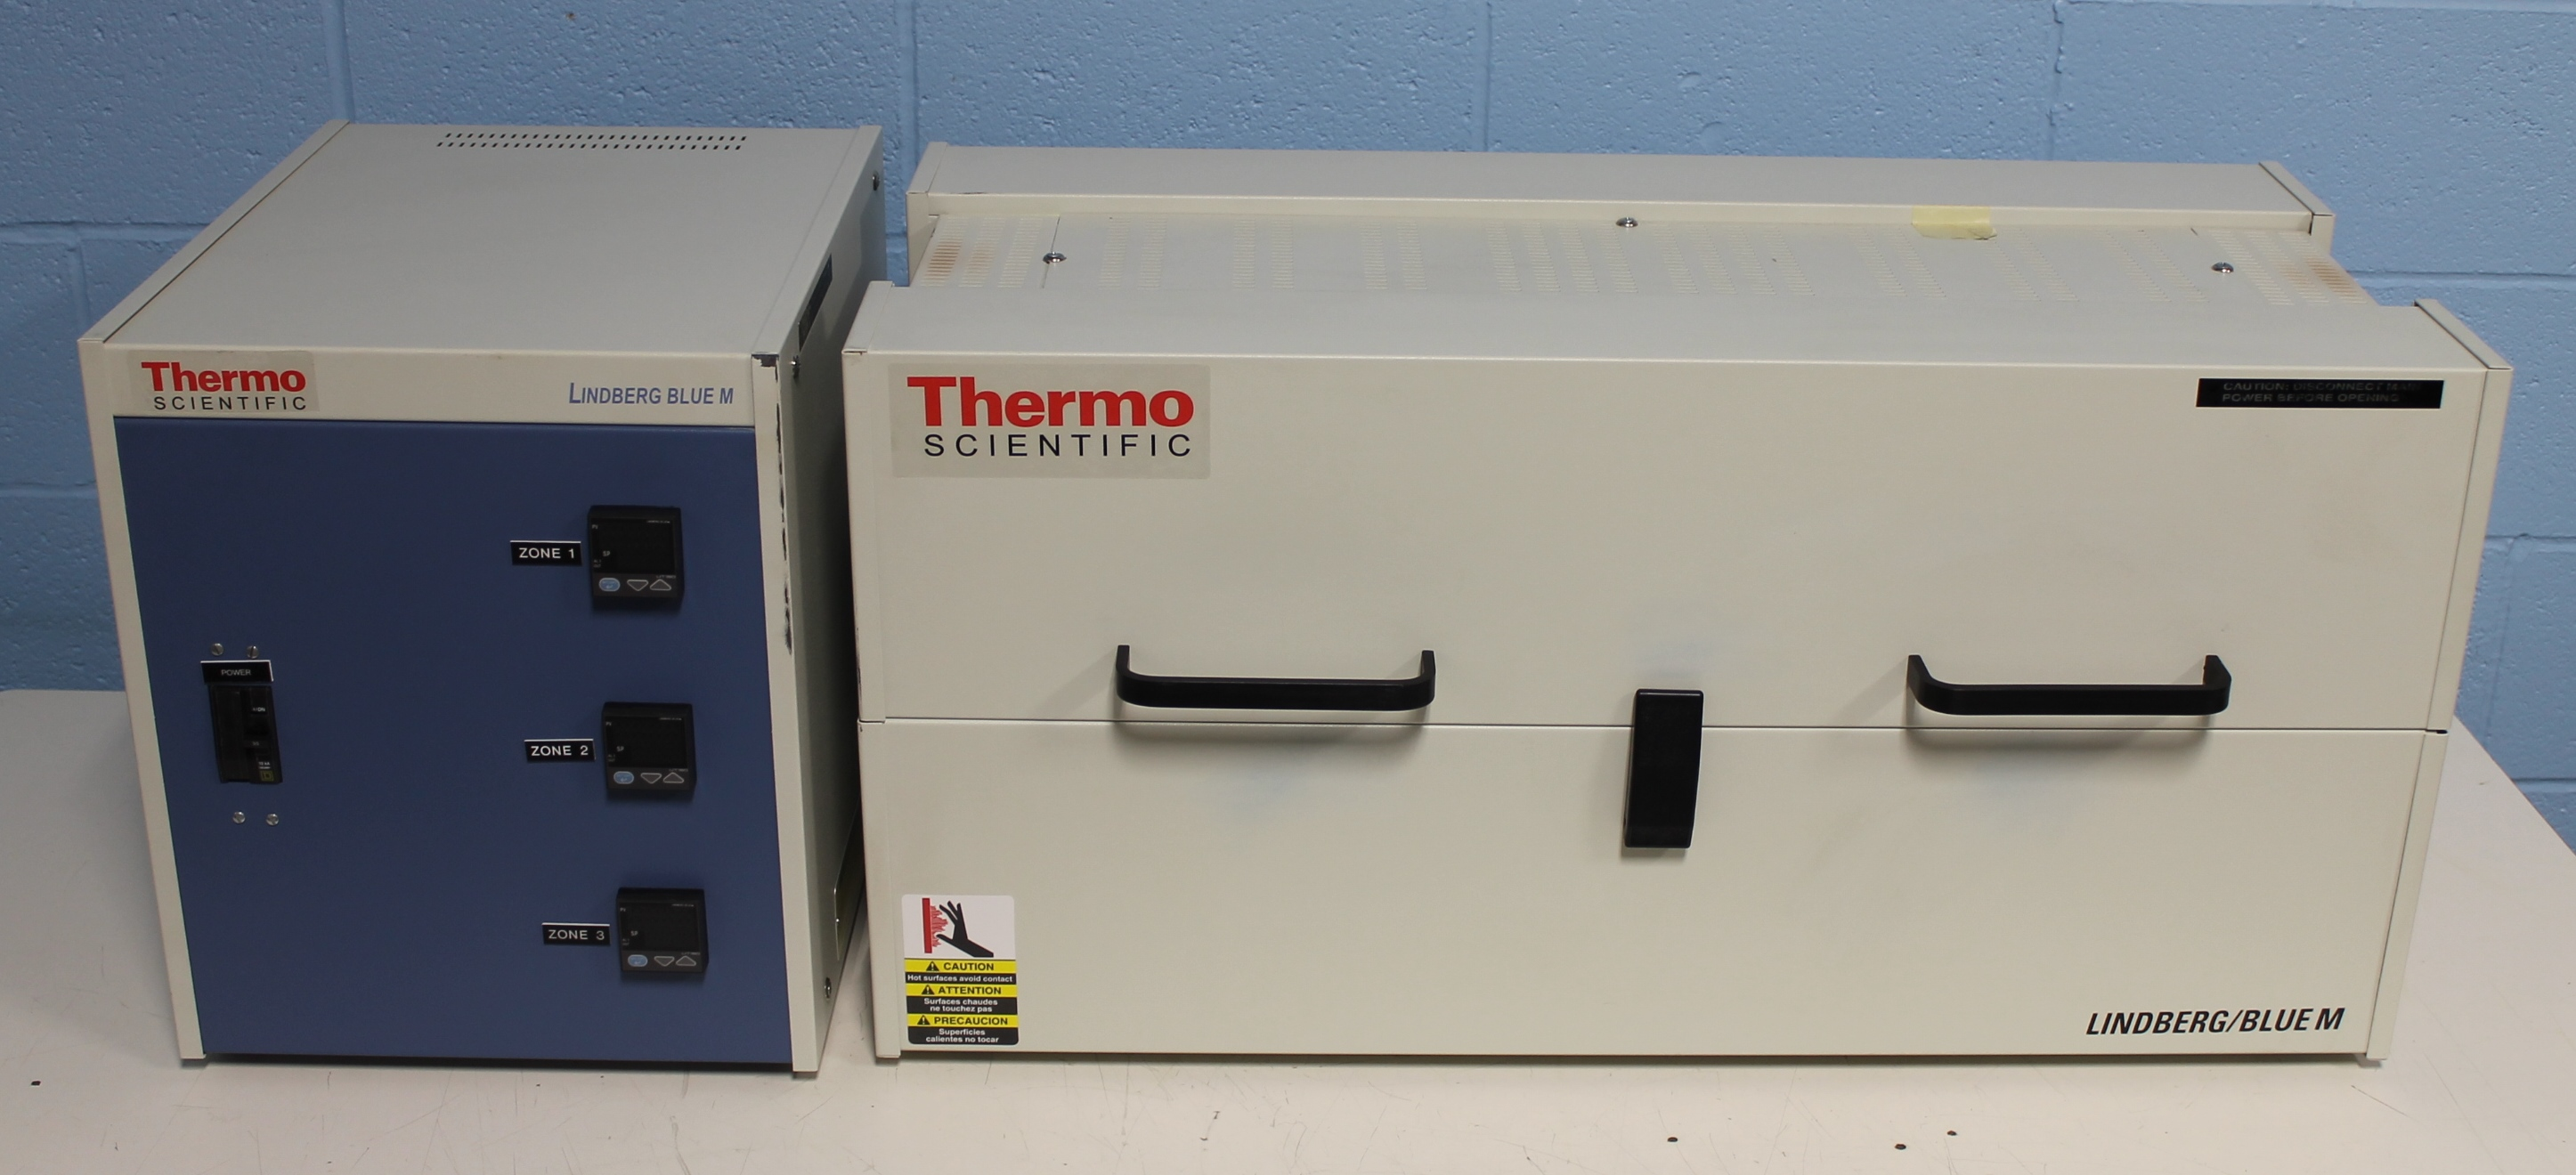 Refurbished Thermo Scientific Lindberg Blue M Split Hinge